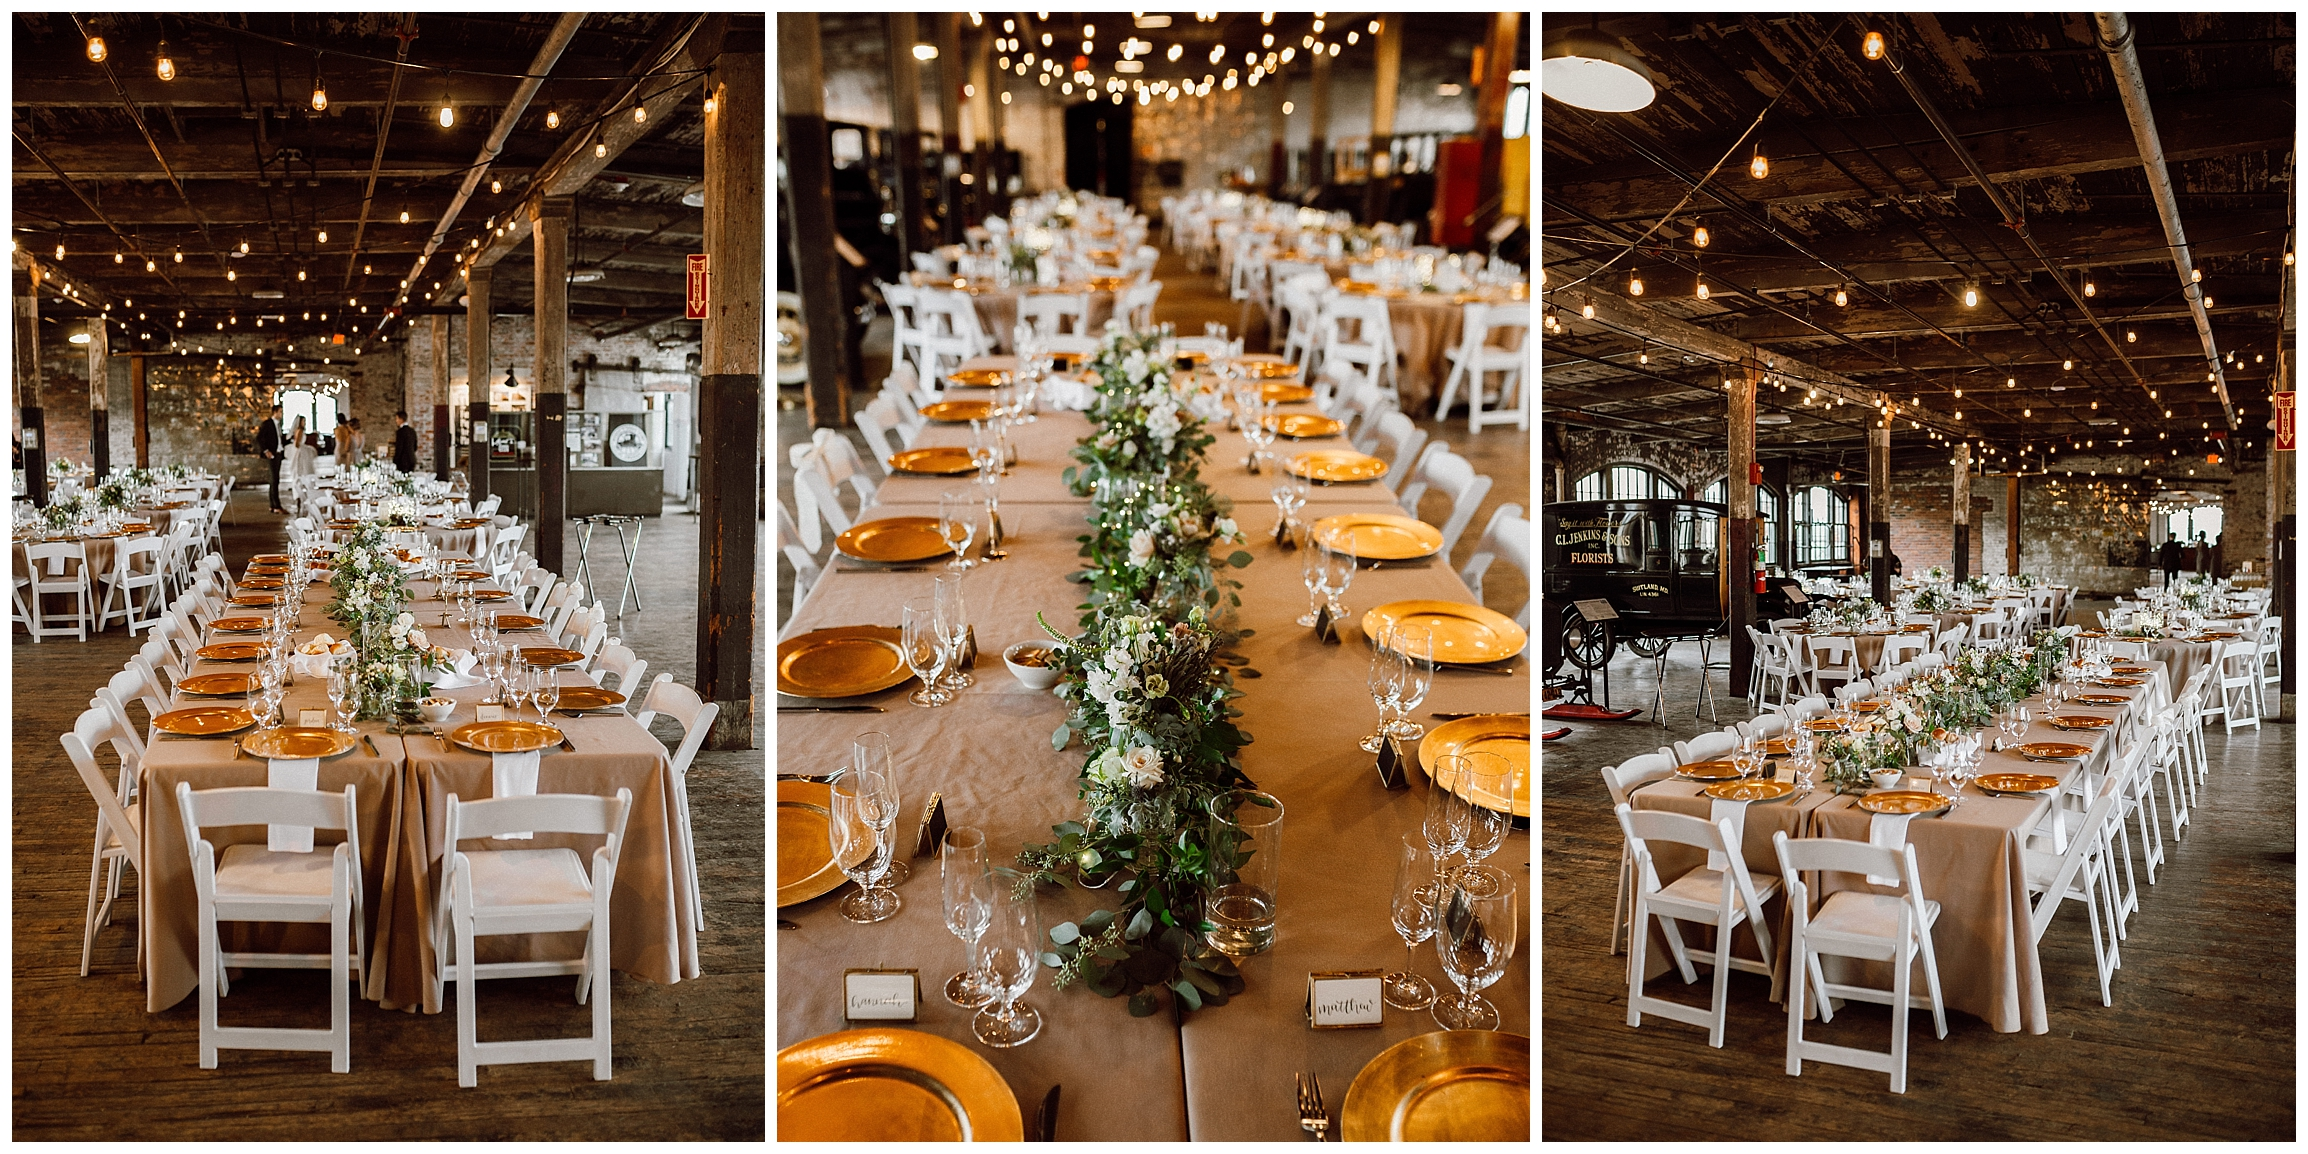 Katie_Vonasek_Photography_Ford_Piquette_Plant_Wedding_Detroit85.JPG